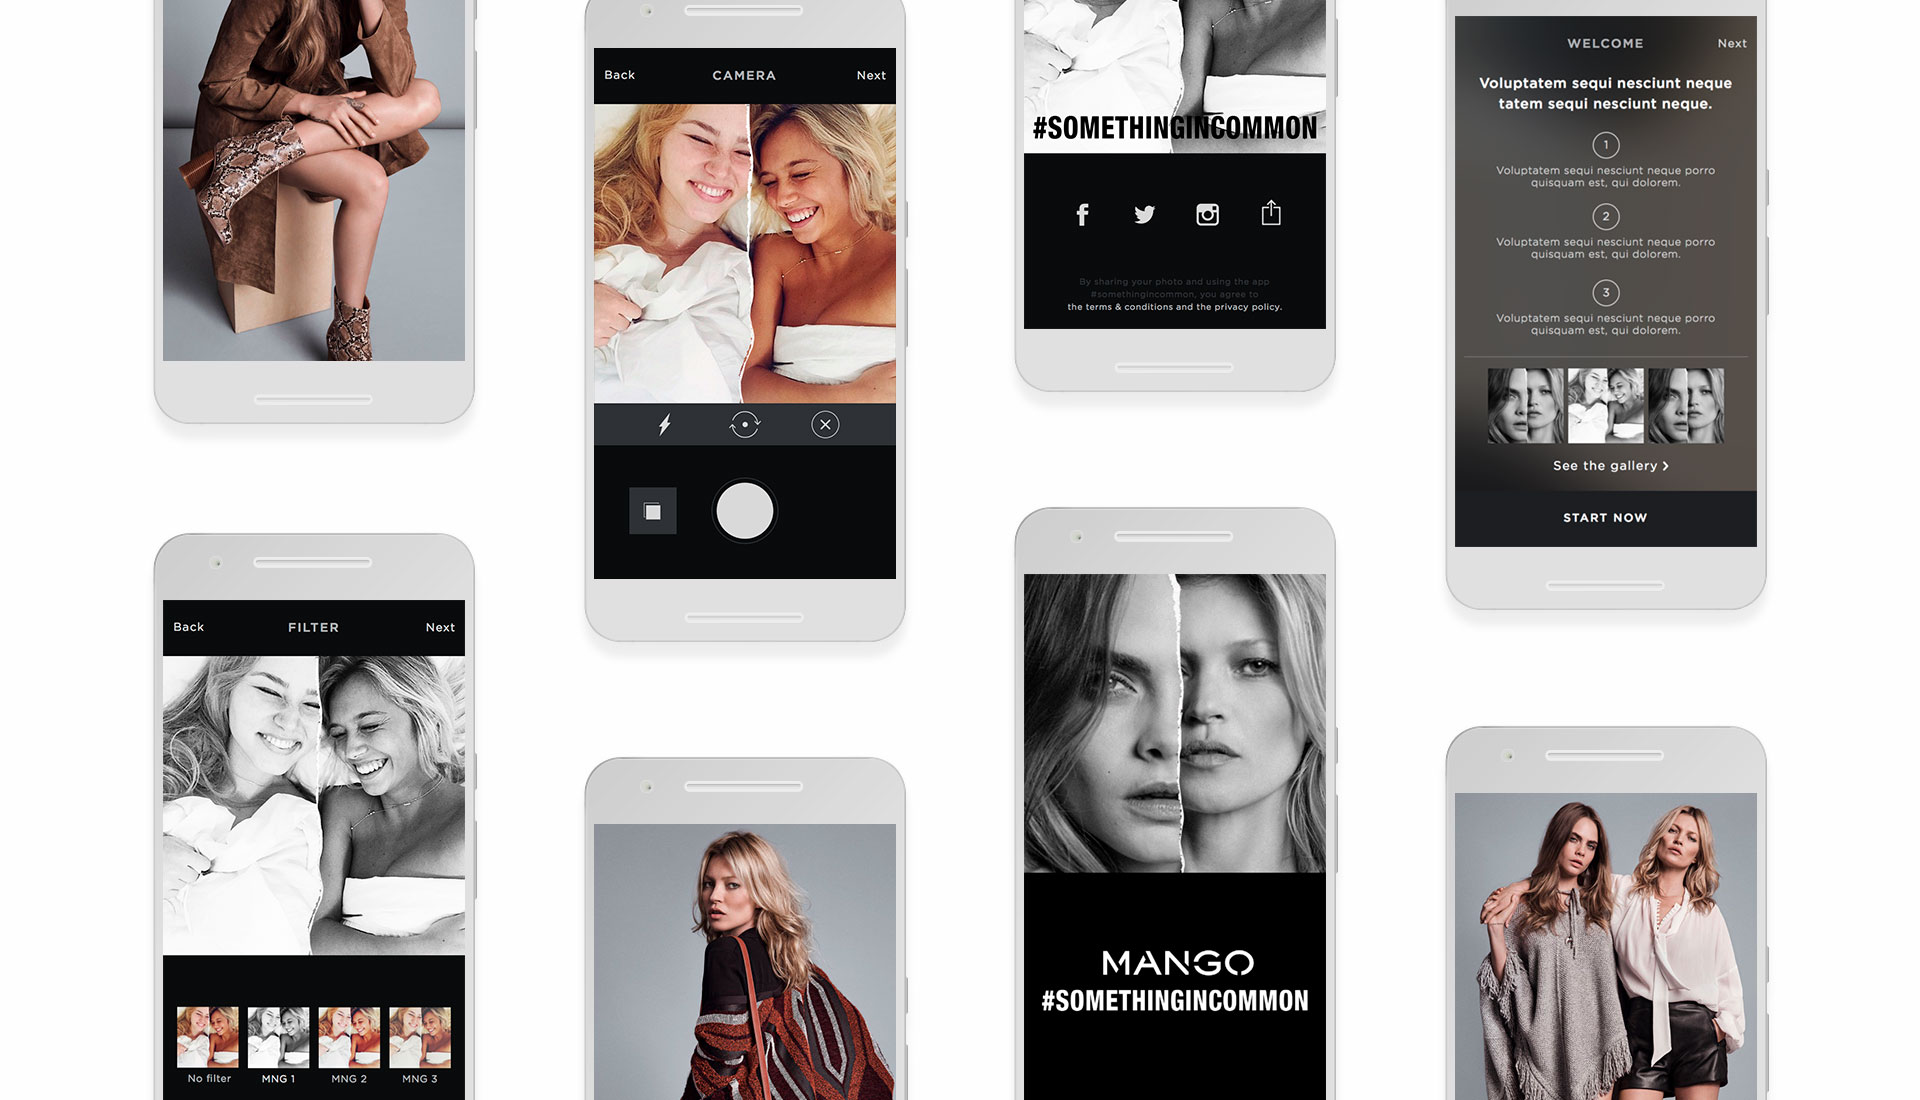 multi-device app #Somethingincommon by Mango